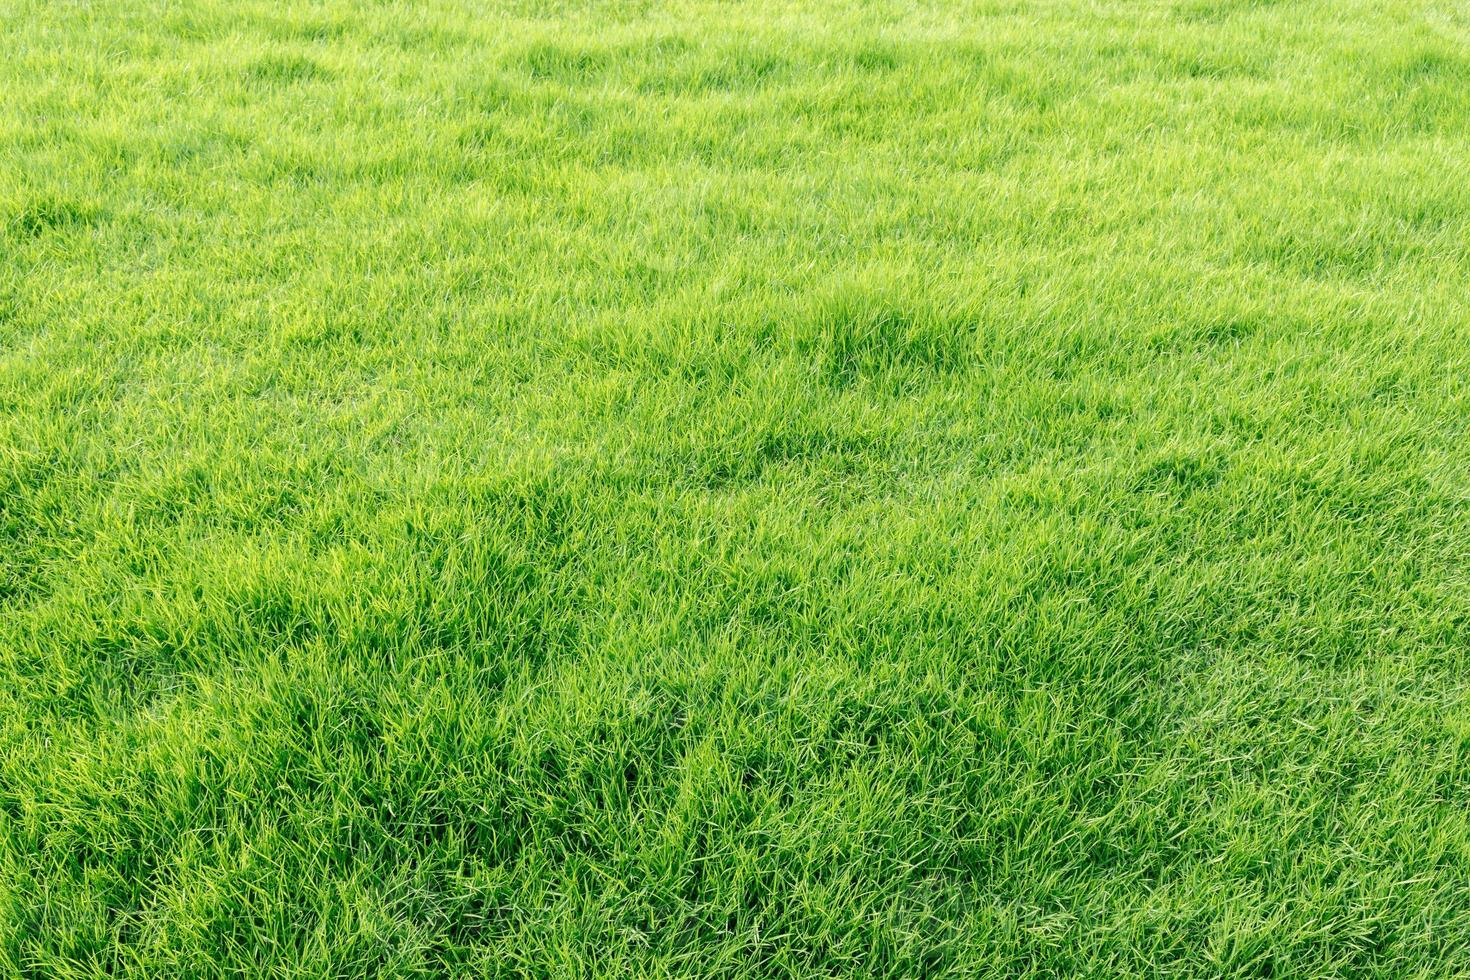 Natural fresh green grass field photo